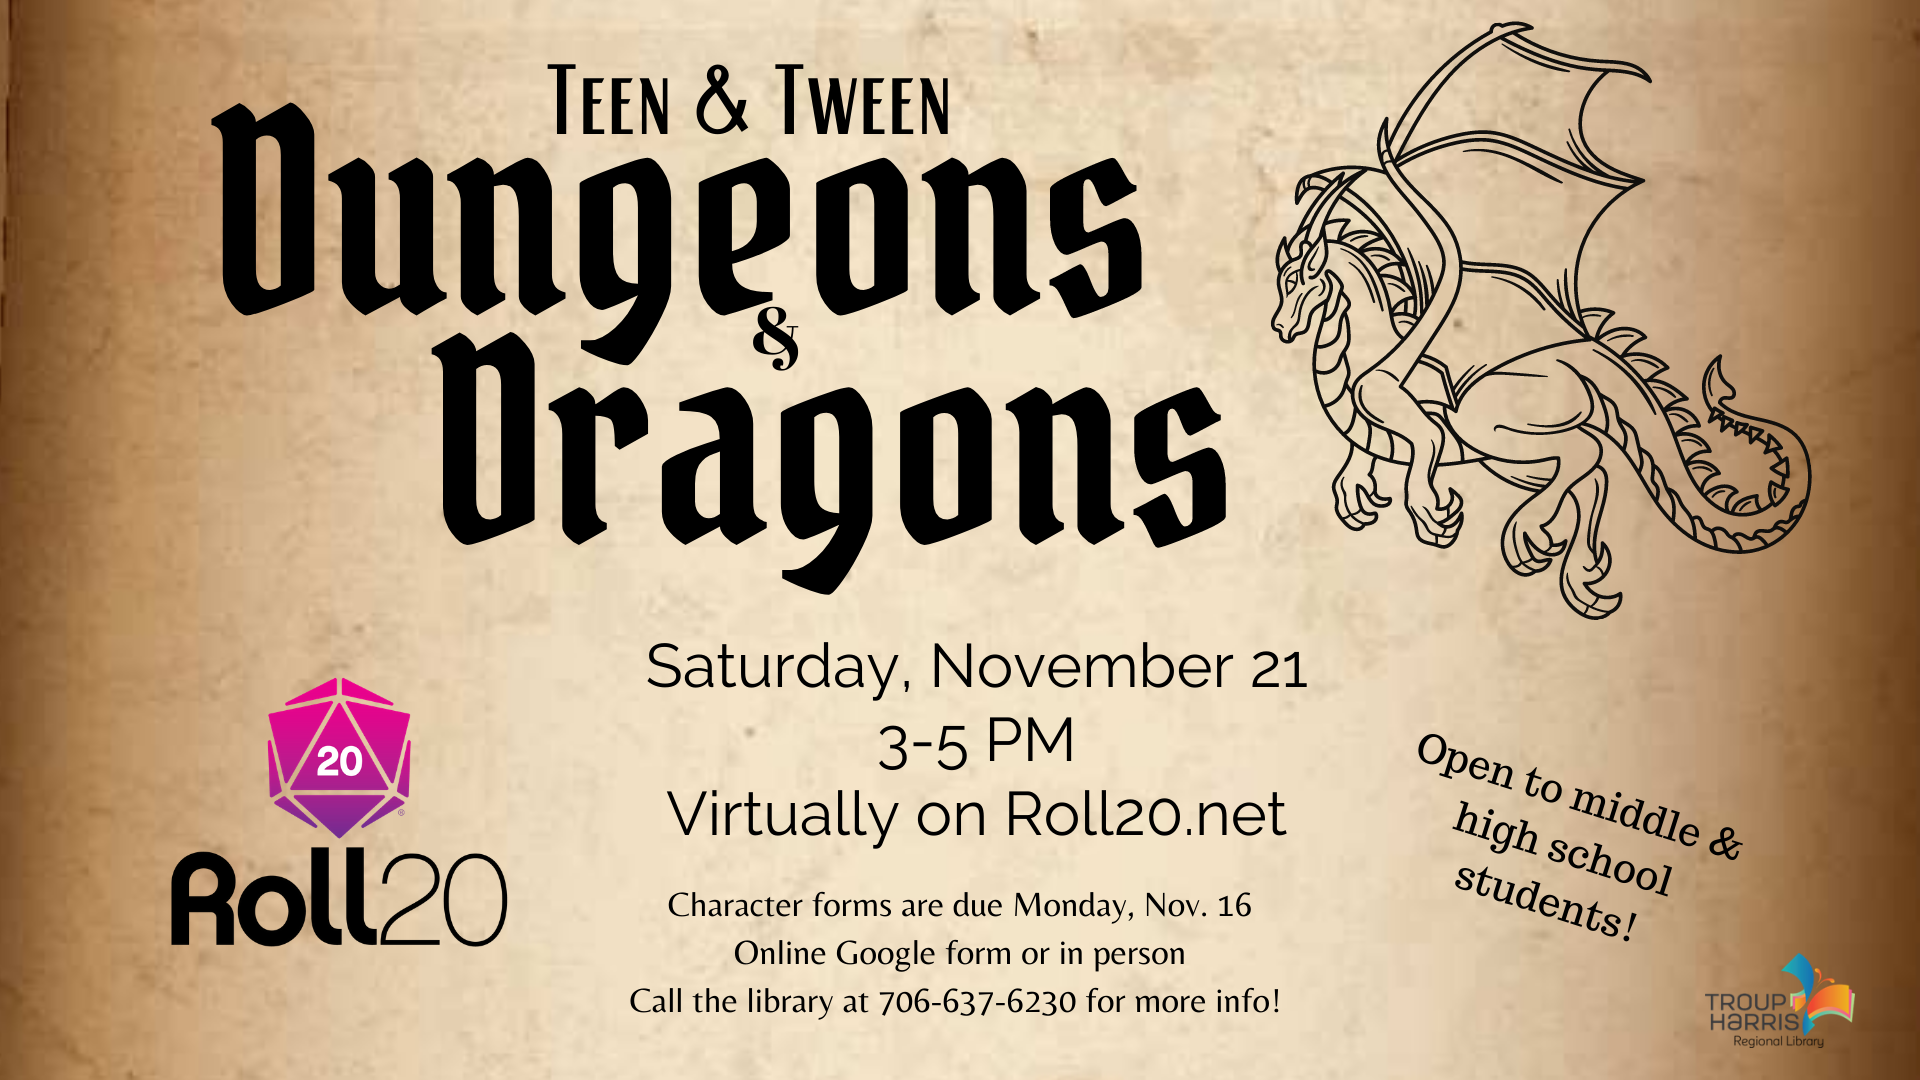 Tween & Teen Dungeons & Dragons